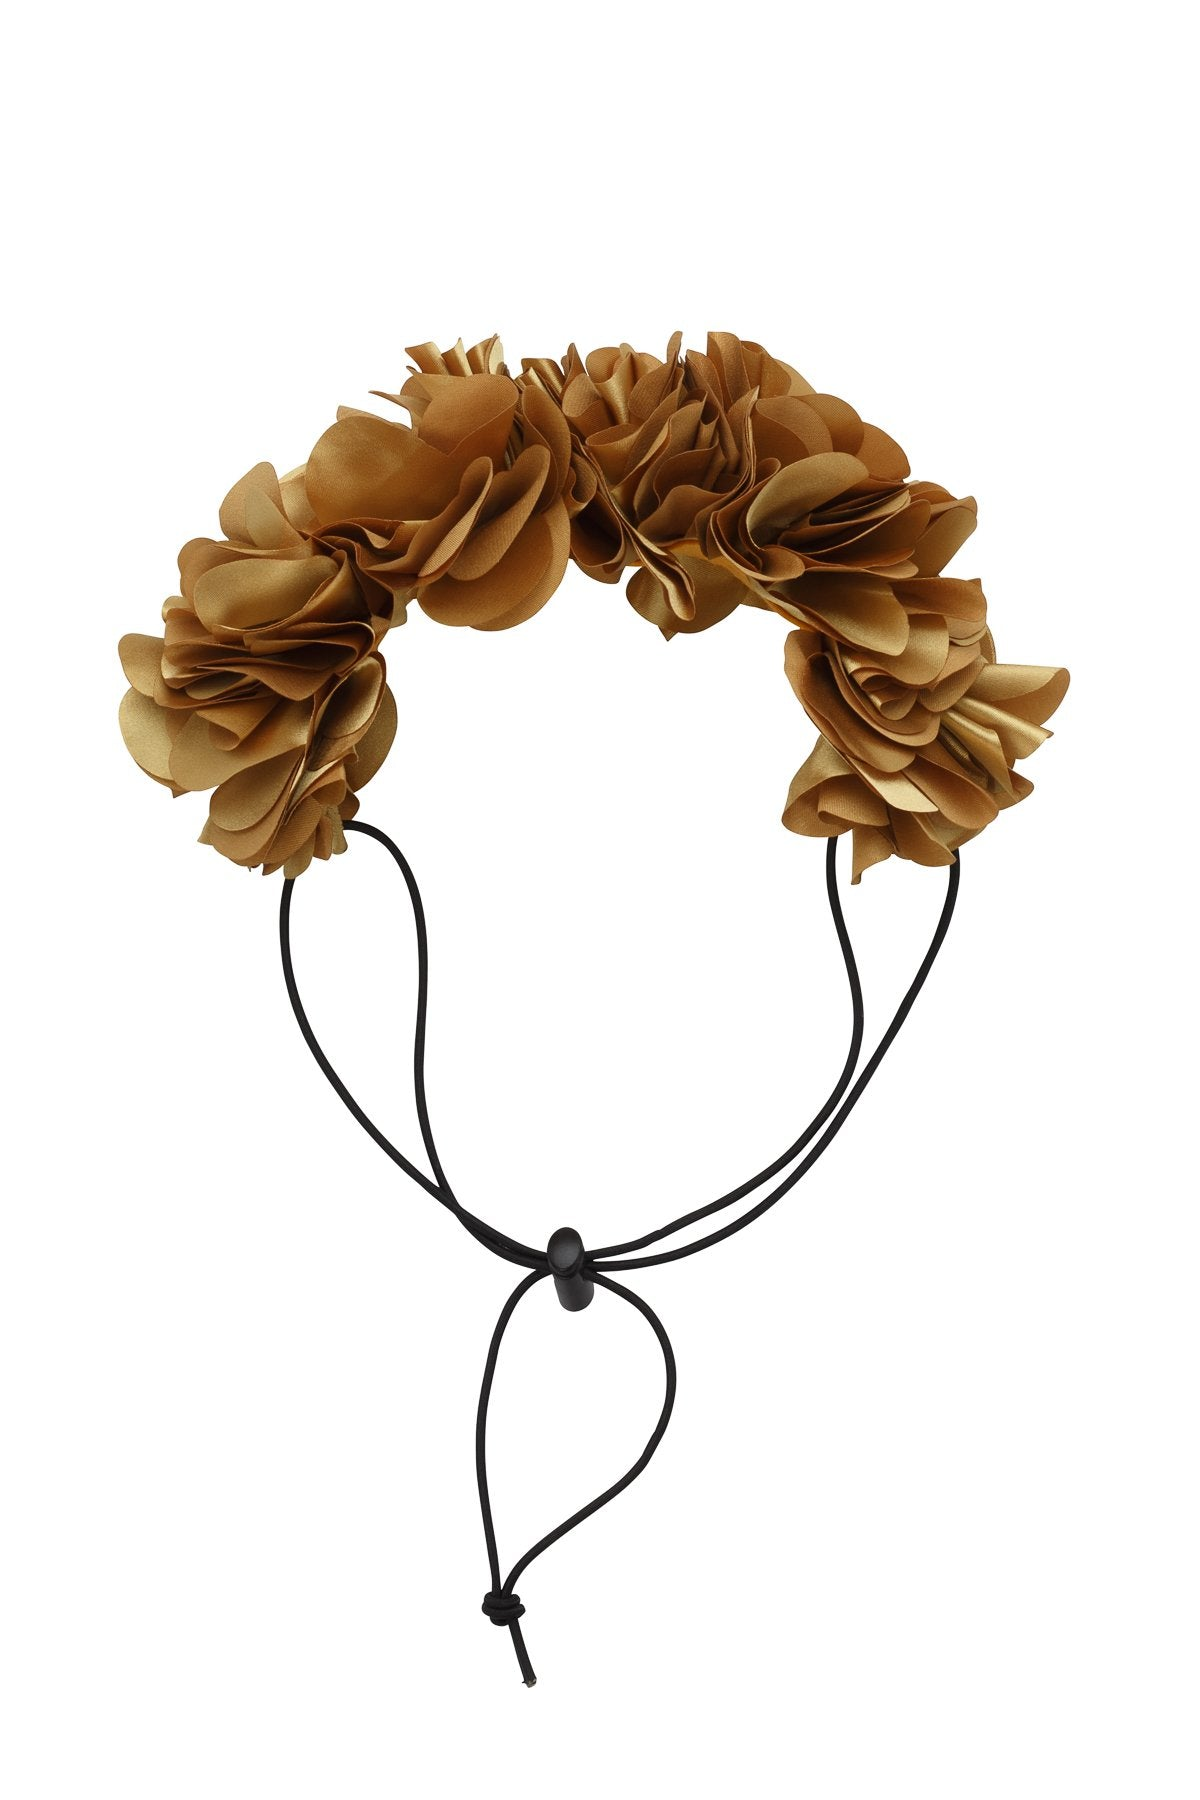 Floral Wreath Petit - Gold - PROJECT 6, modest fashion